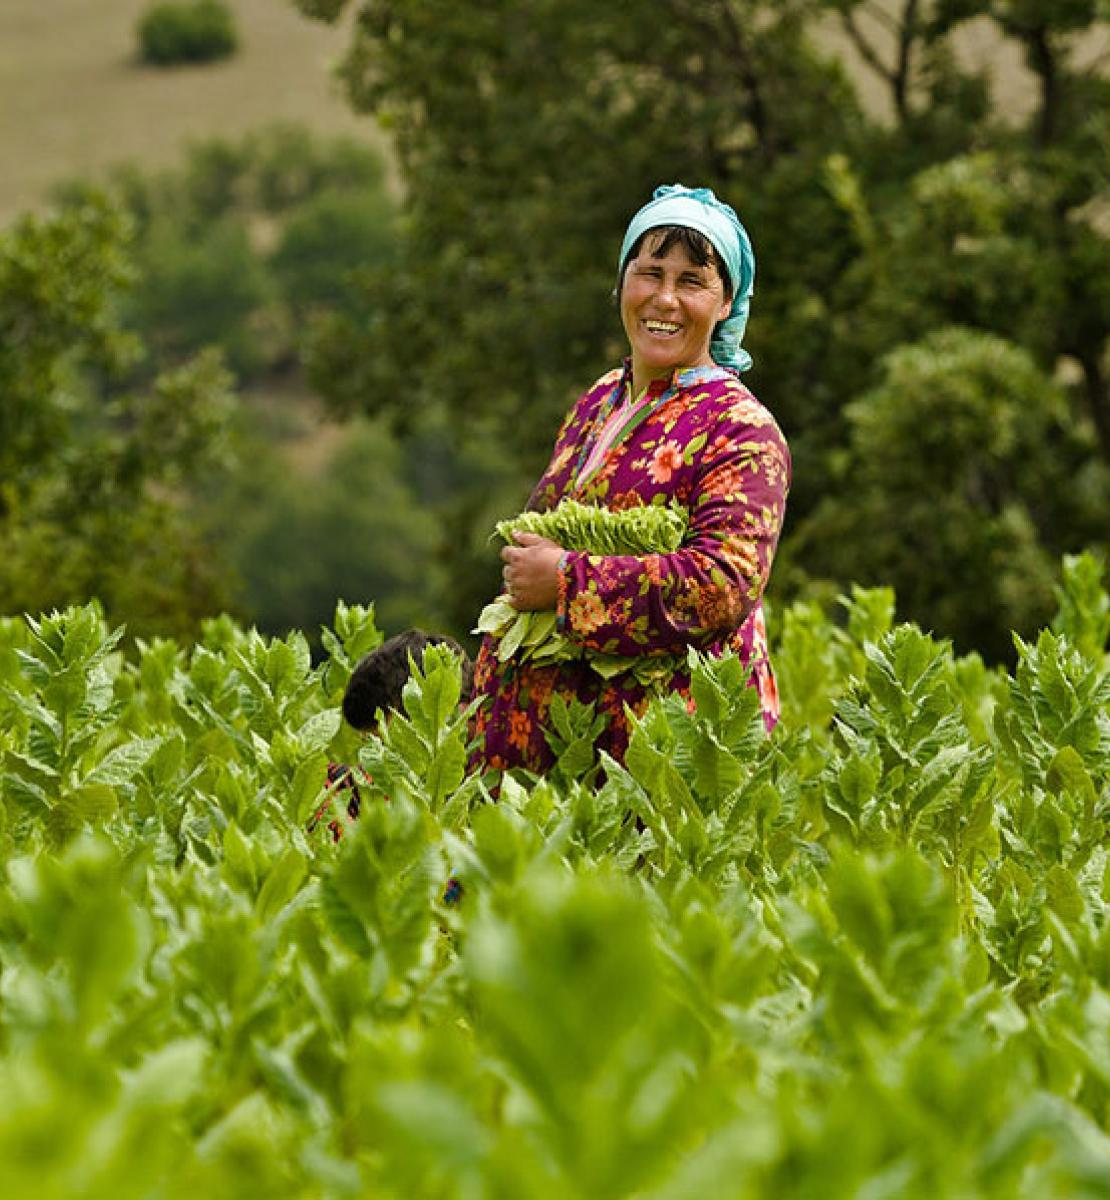 A woman smiles happily as she stands in the middle of a field of crops.